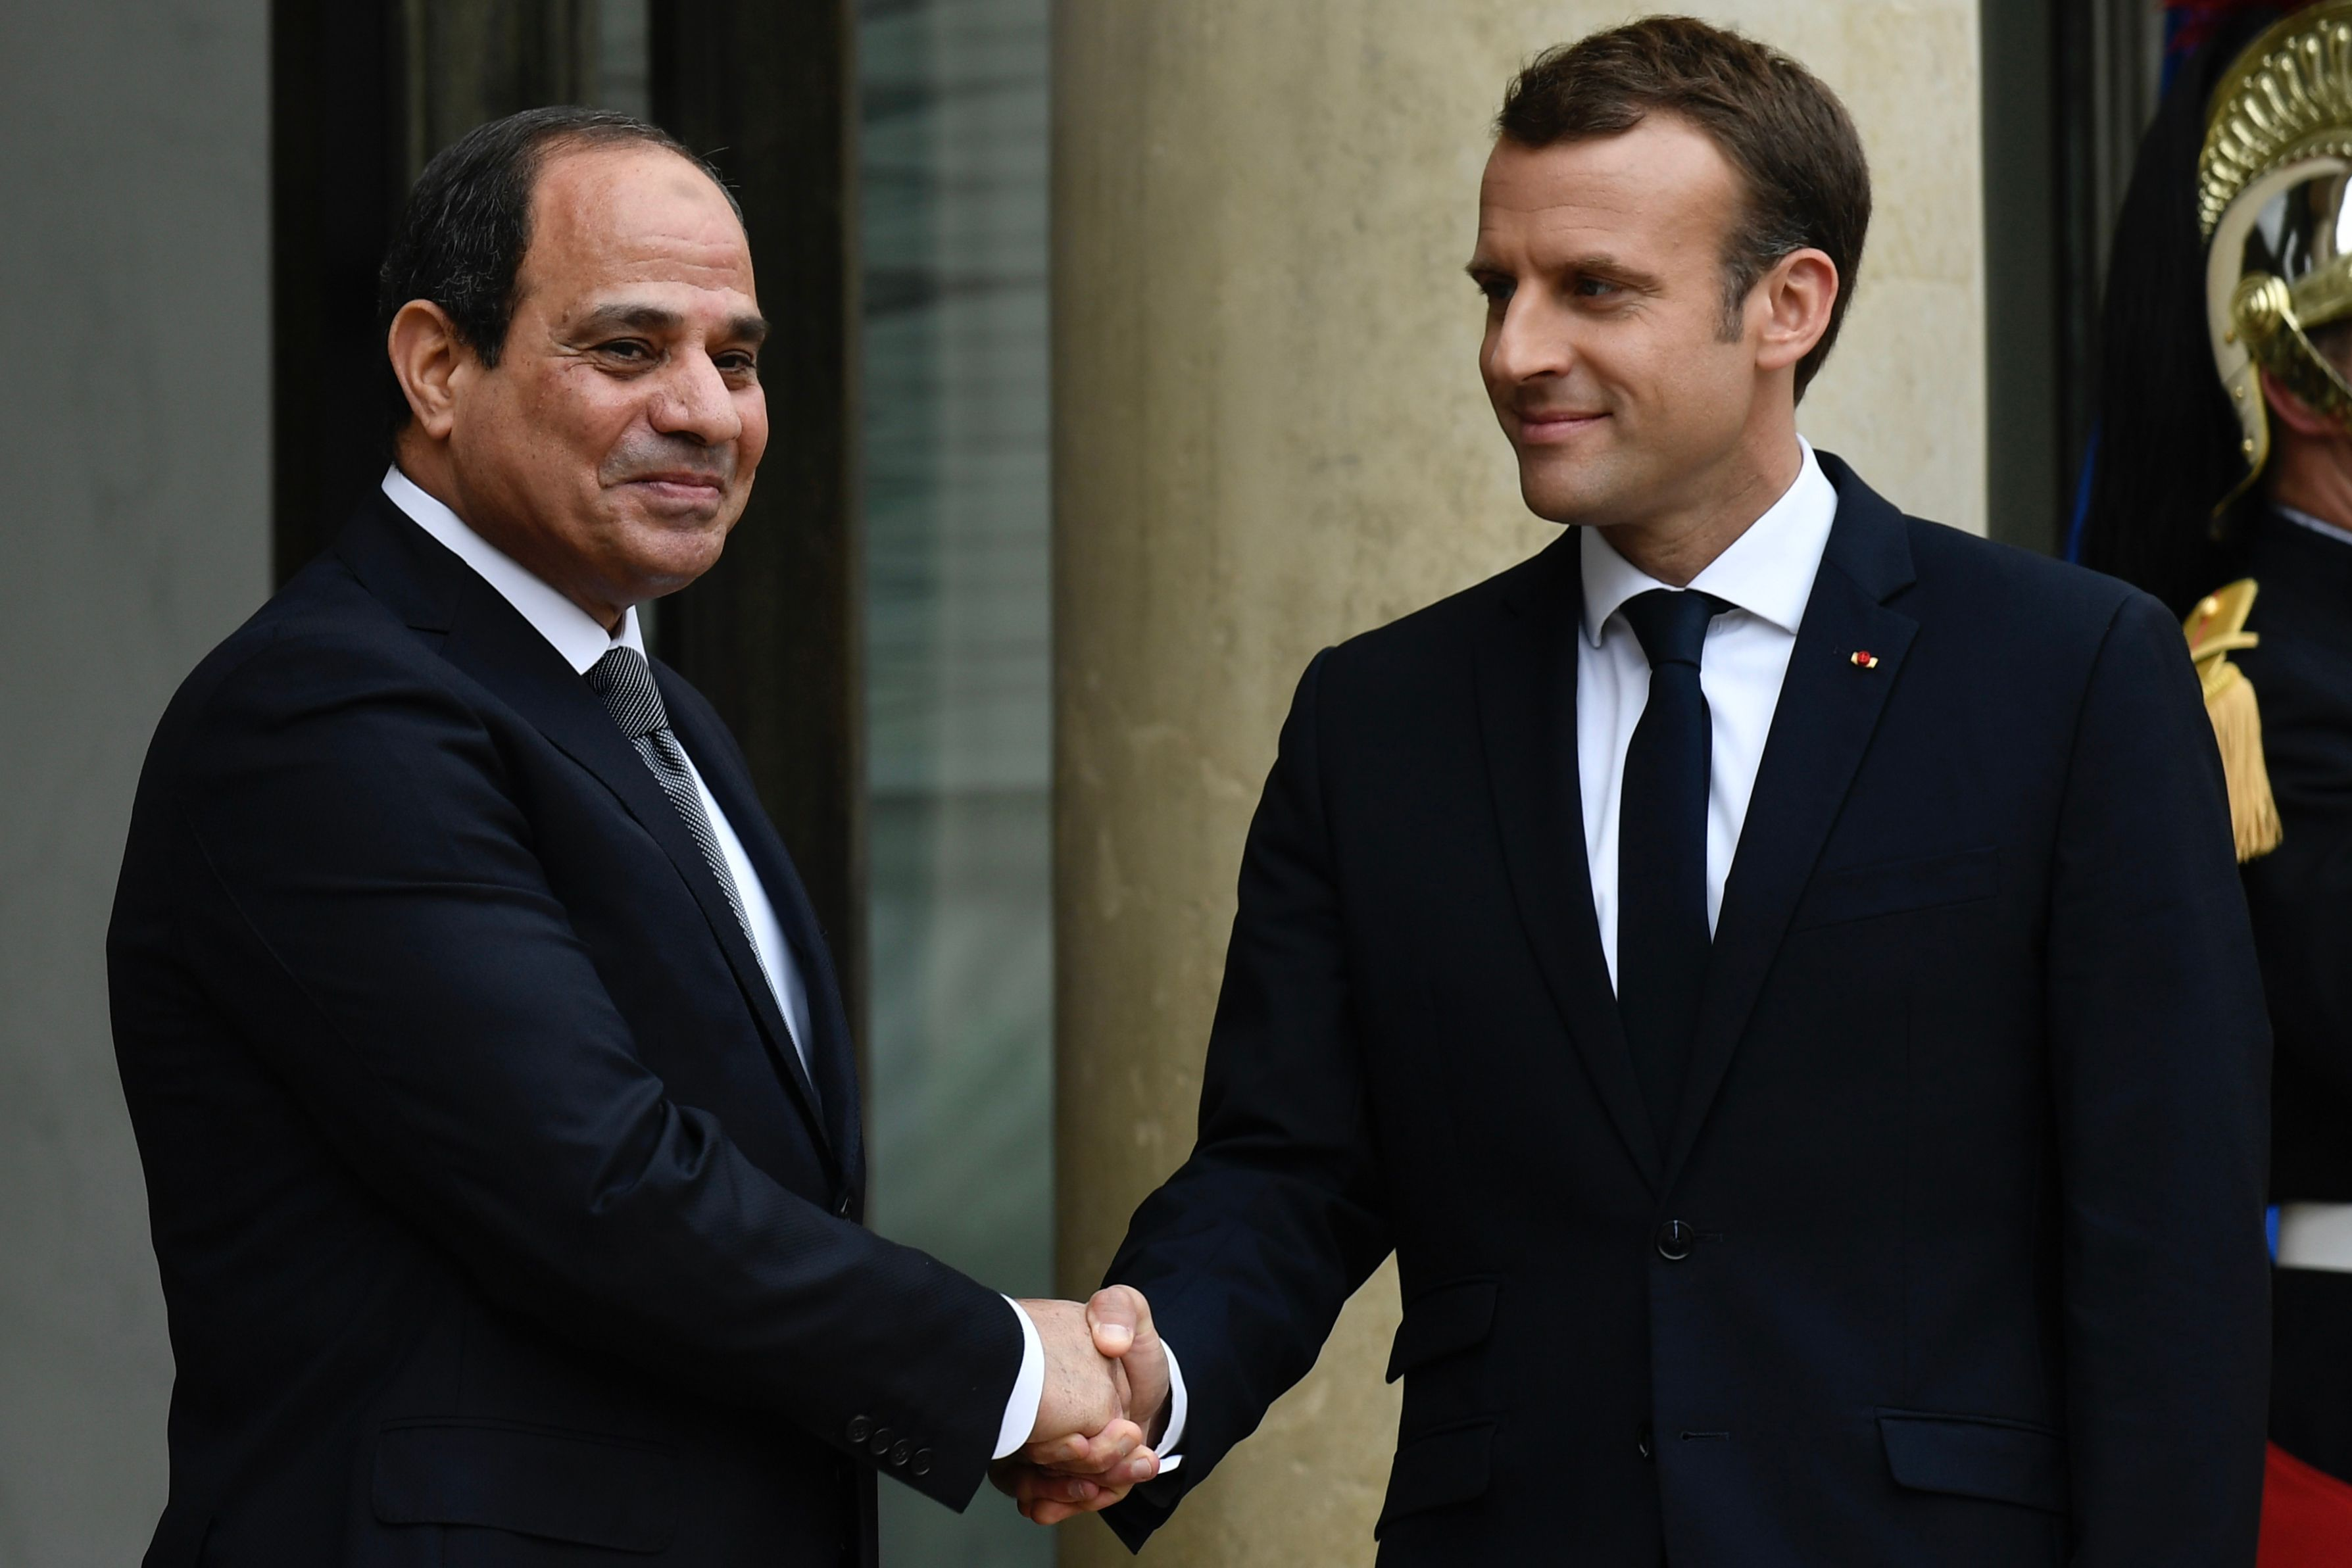 Macron presses Egypt's Al-Sisi on human rights during official visit